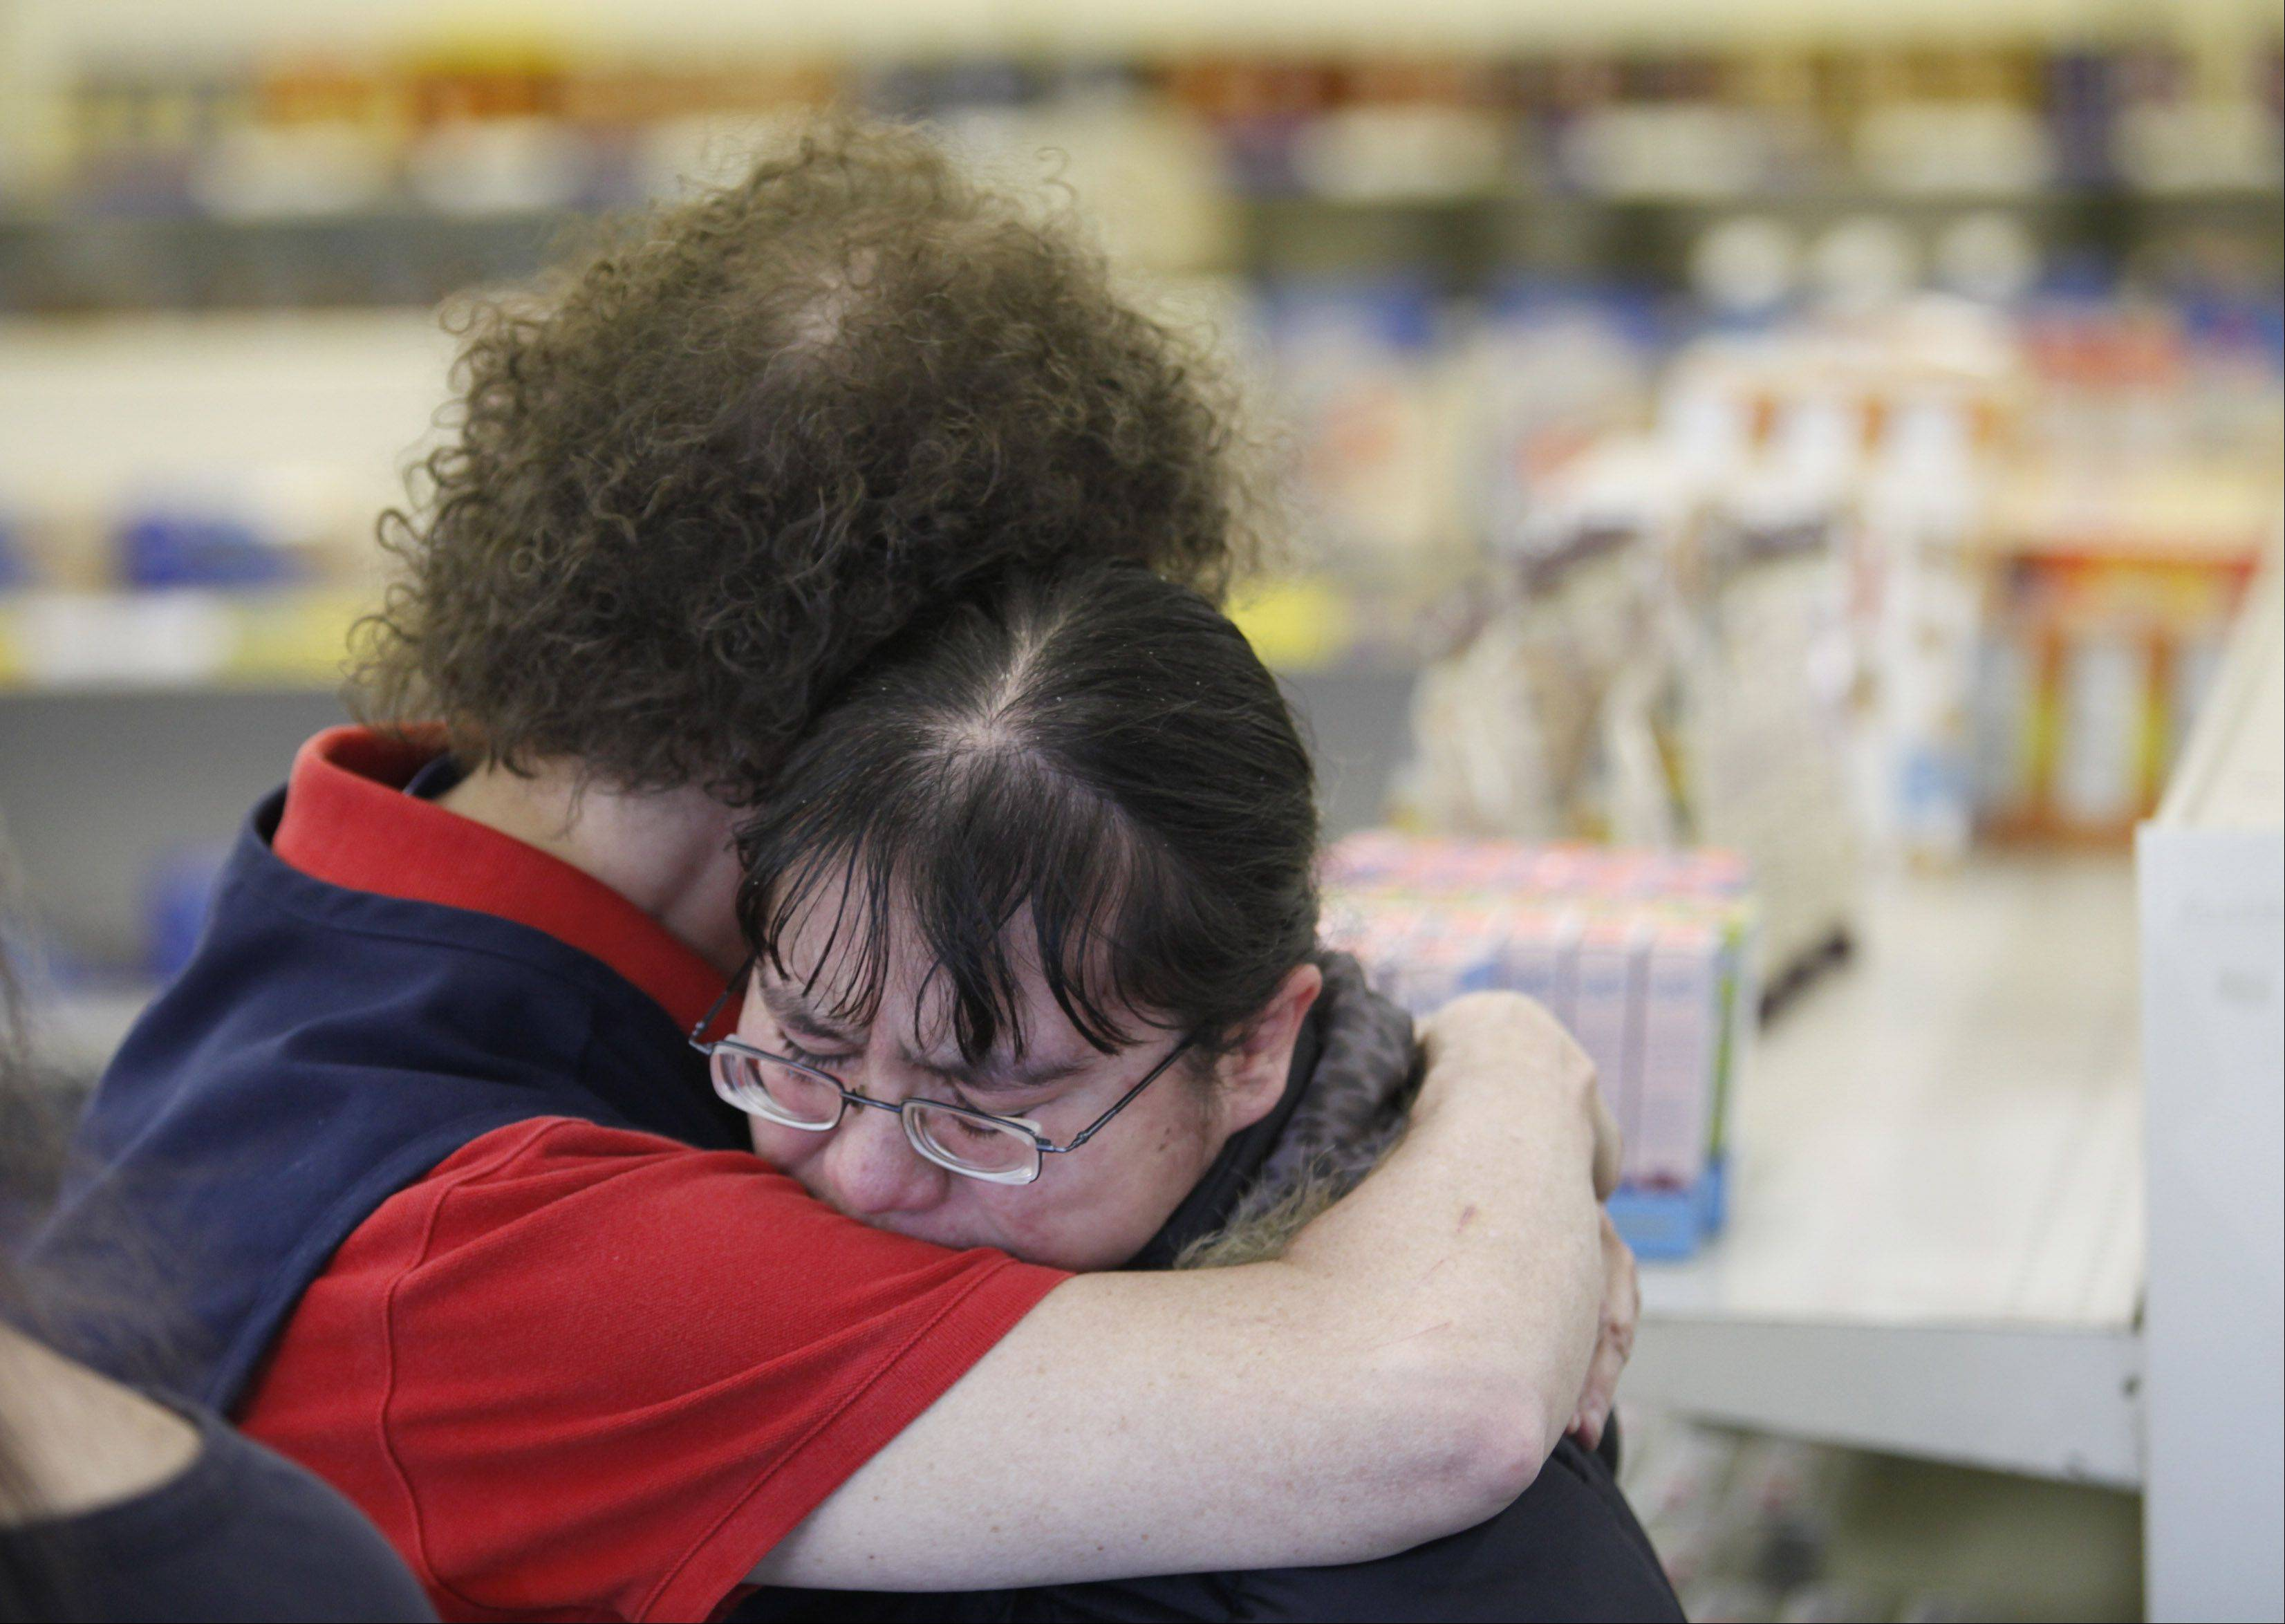 Wonder Hostess Thrift Shop employee Kathy Lipprandt, left, hugs fellow employee A.J. Galvan Friday after it was announced the Hostess company was calling it quits.